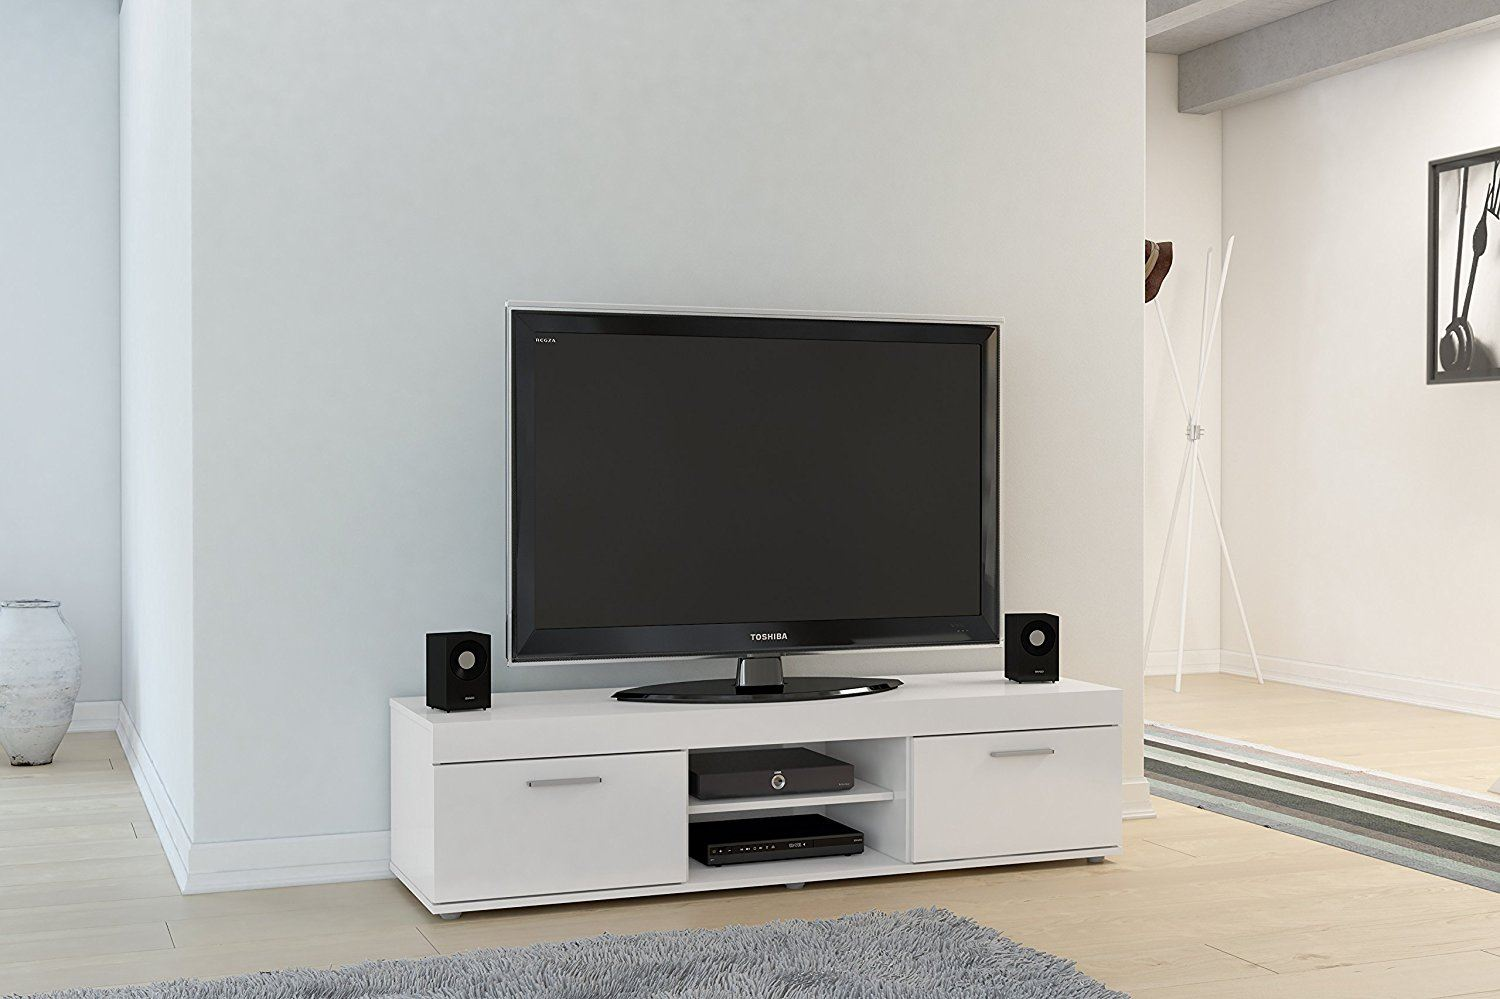 Birlea Edgeware TV Entertainment Unit White Gloss Living Room Stand Cabinet